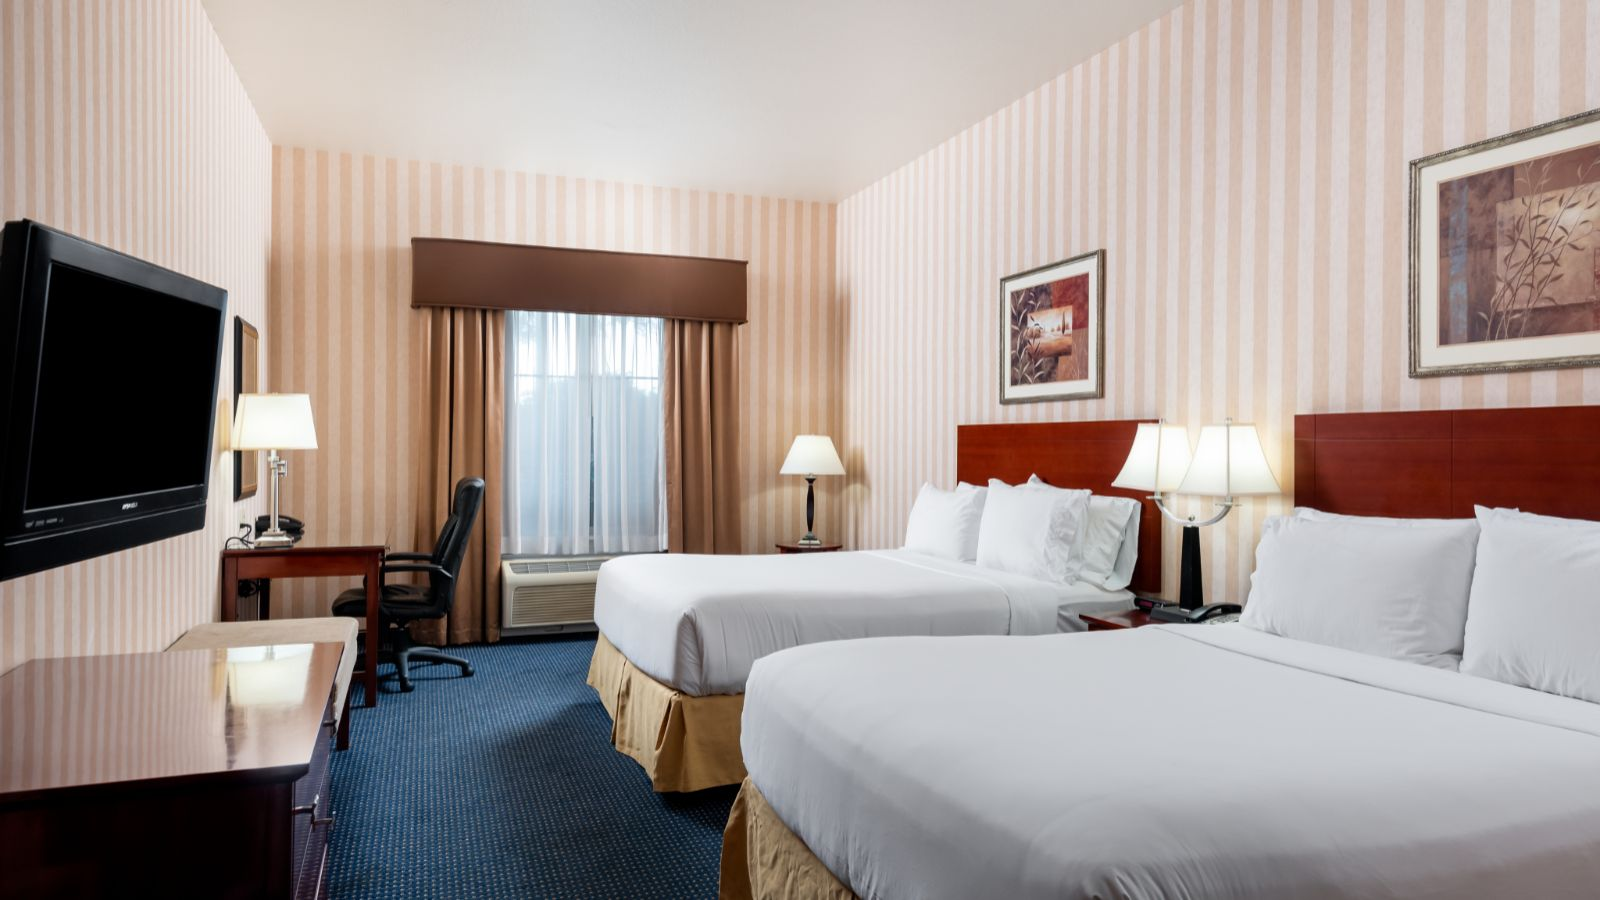 Lathrop Holiday Inn Express rooms and suites